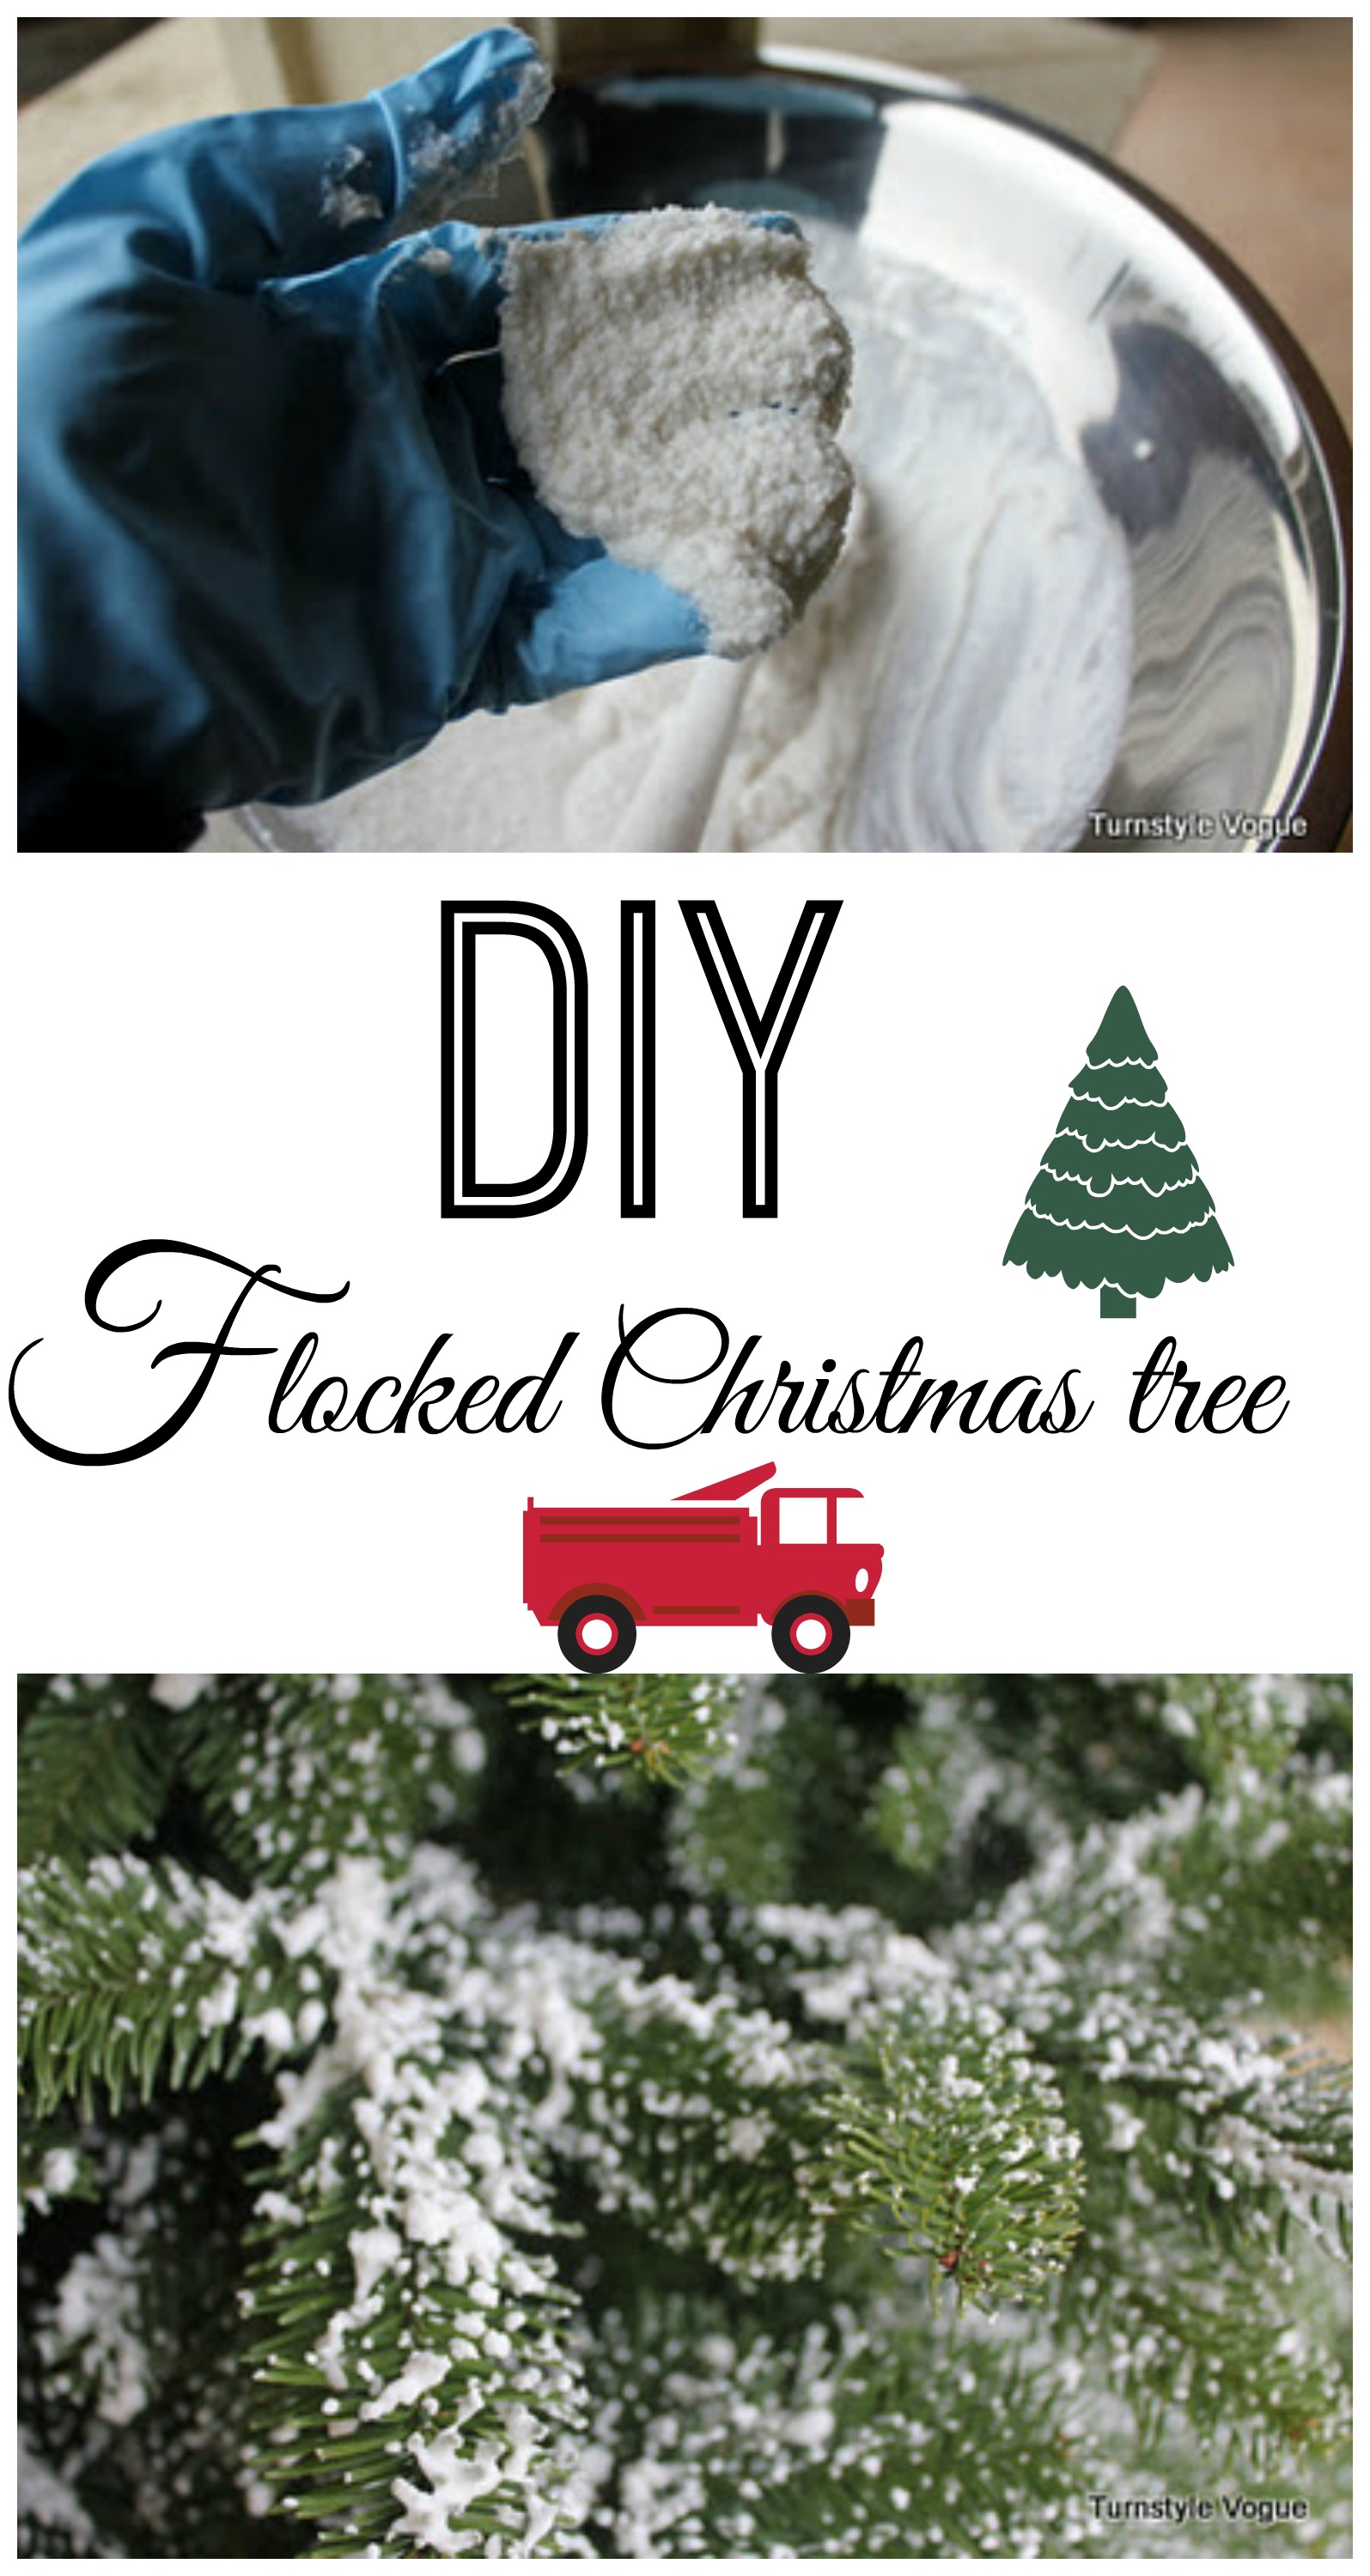 Diy flocked tree debbiedoos diy flocked christmas tree solutioingenieria